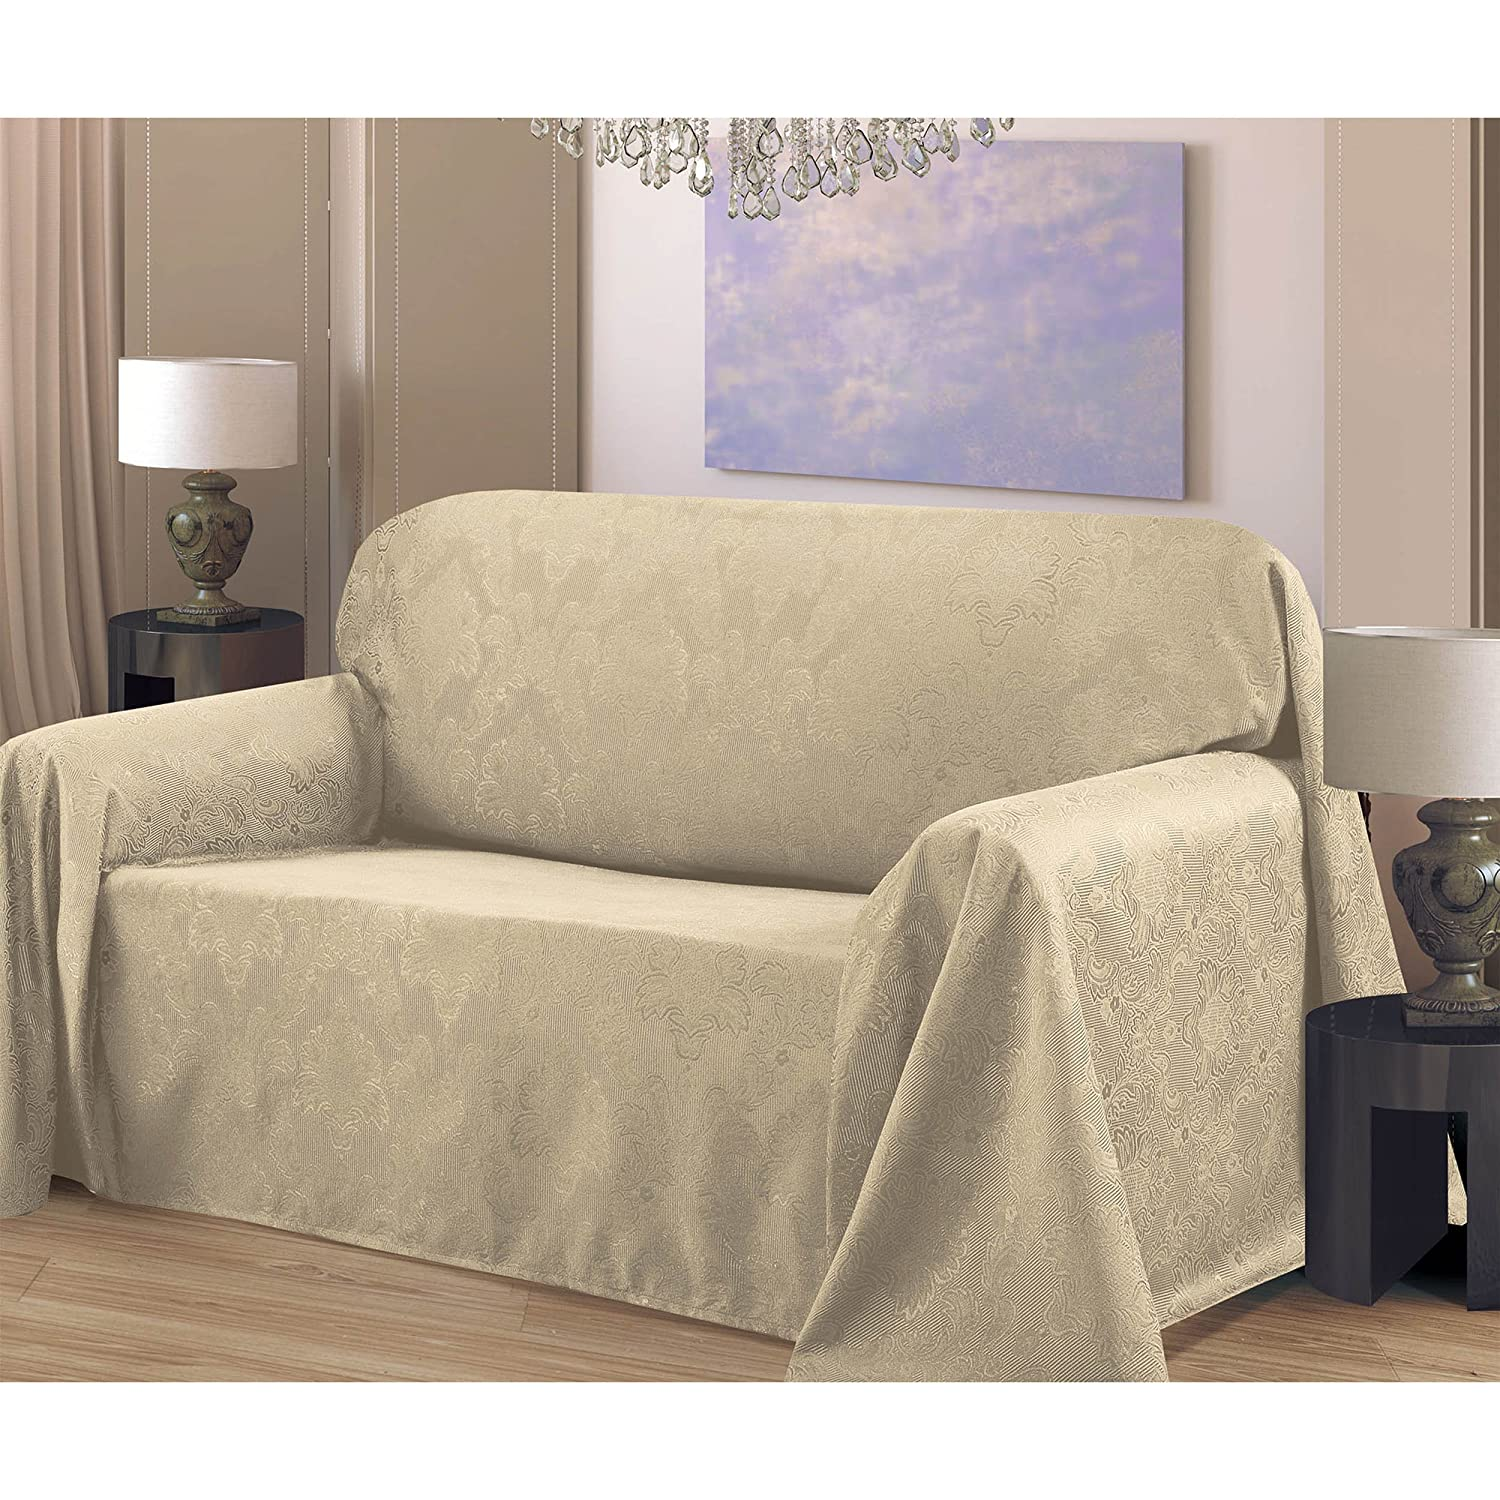 Amazon CHI Medallion Solid Jacquard Sofa Slip Cover 70 by